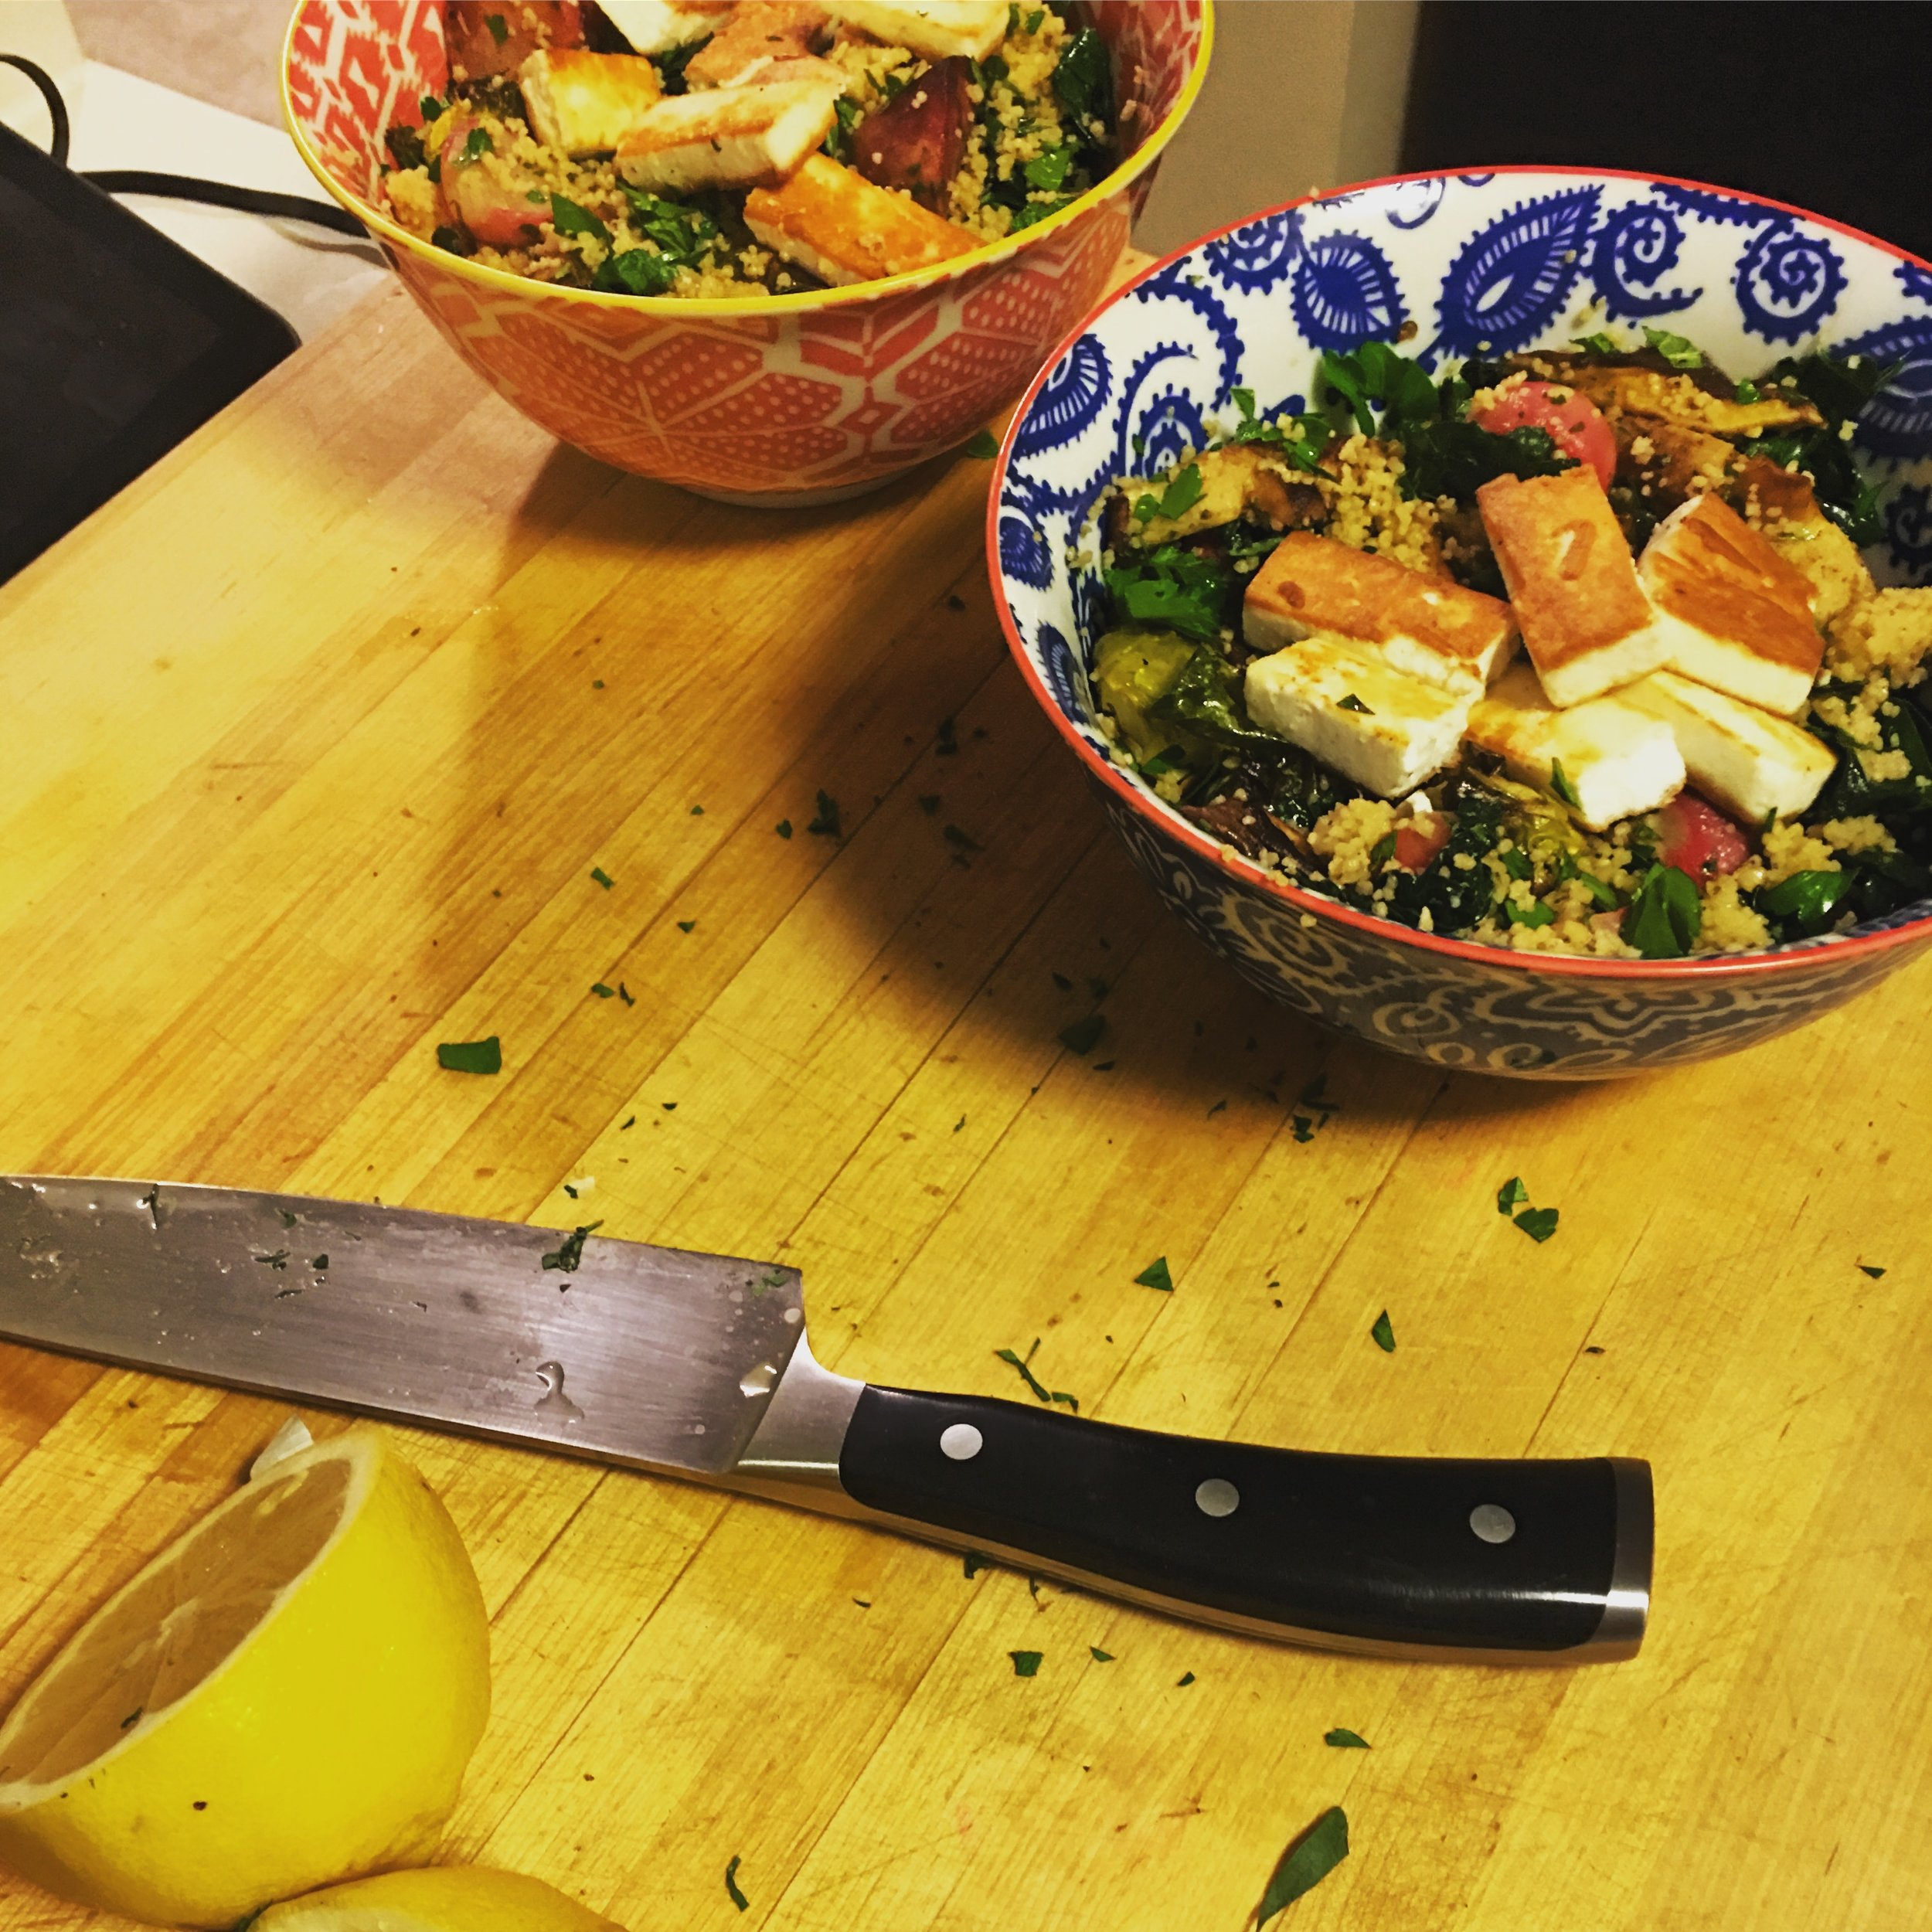 Berbere Veggies: Variation 1   My first incarnation of a recipe I'm working on for a forthcoming blog post: roasted vegetables with Berbere spice mix, couscous, rainbow chard, parsley and mint and pan-fried halloumi.